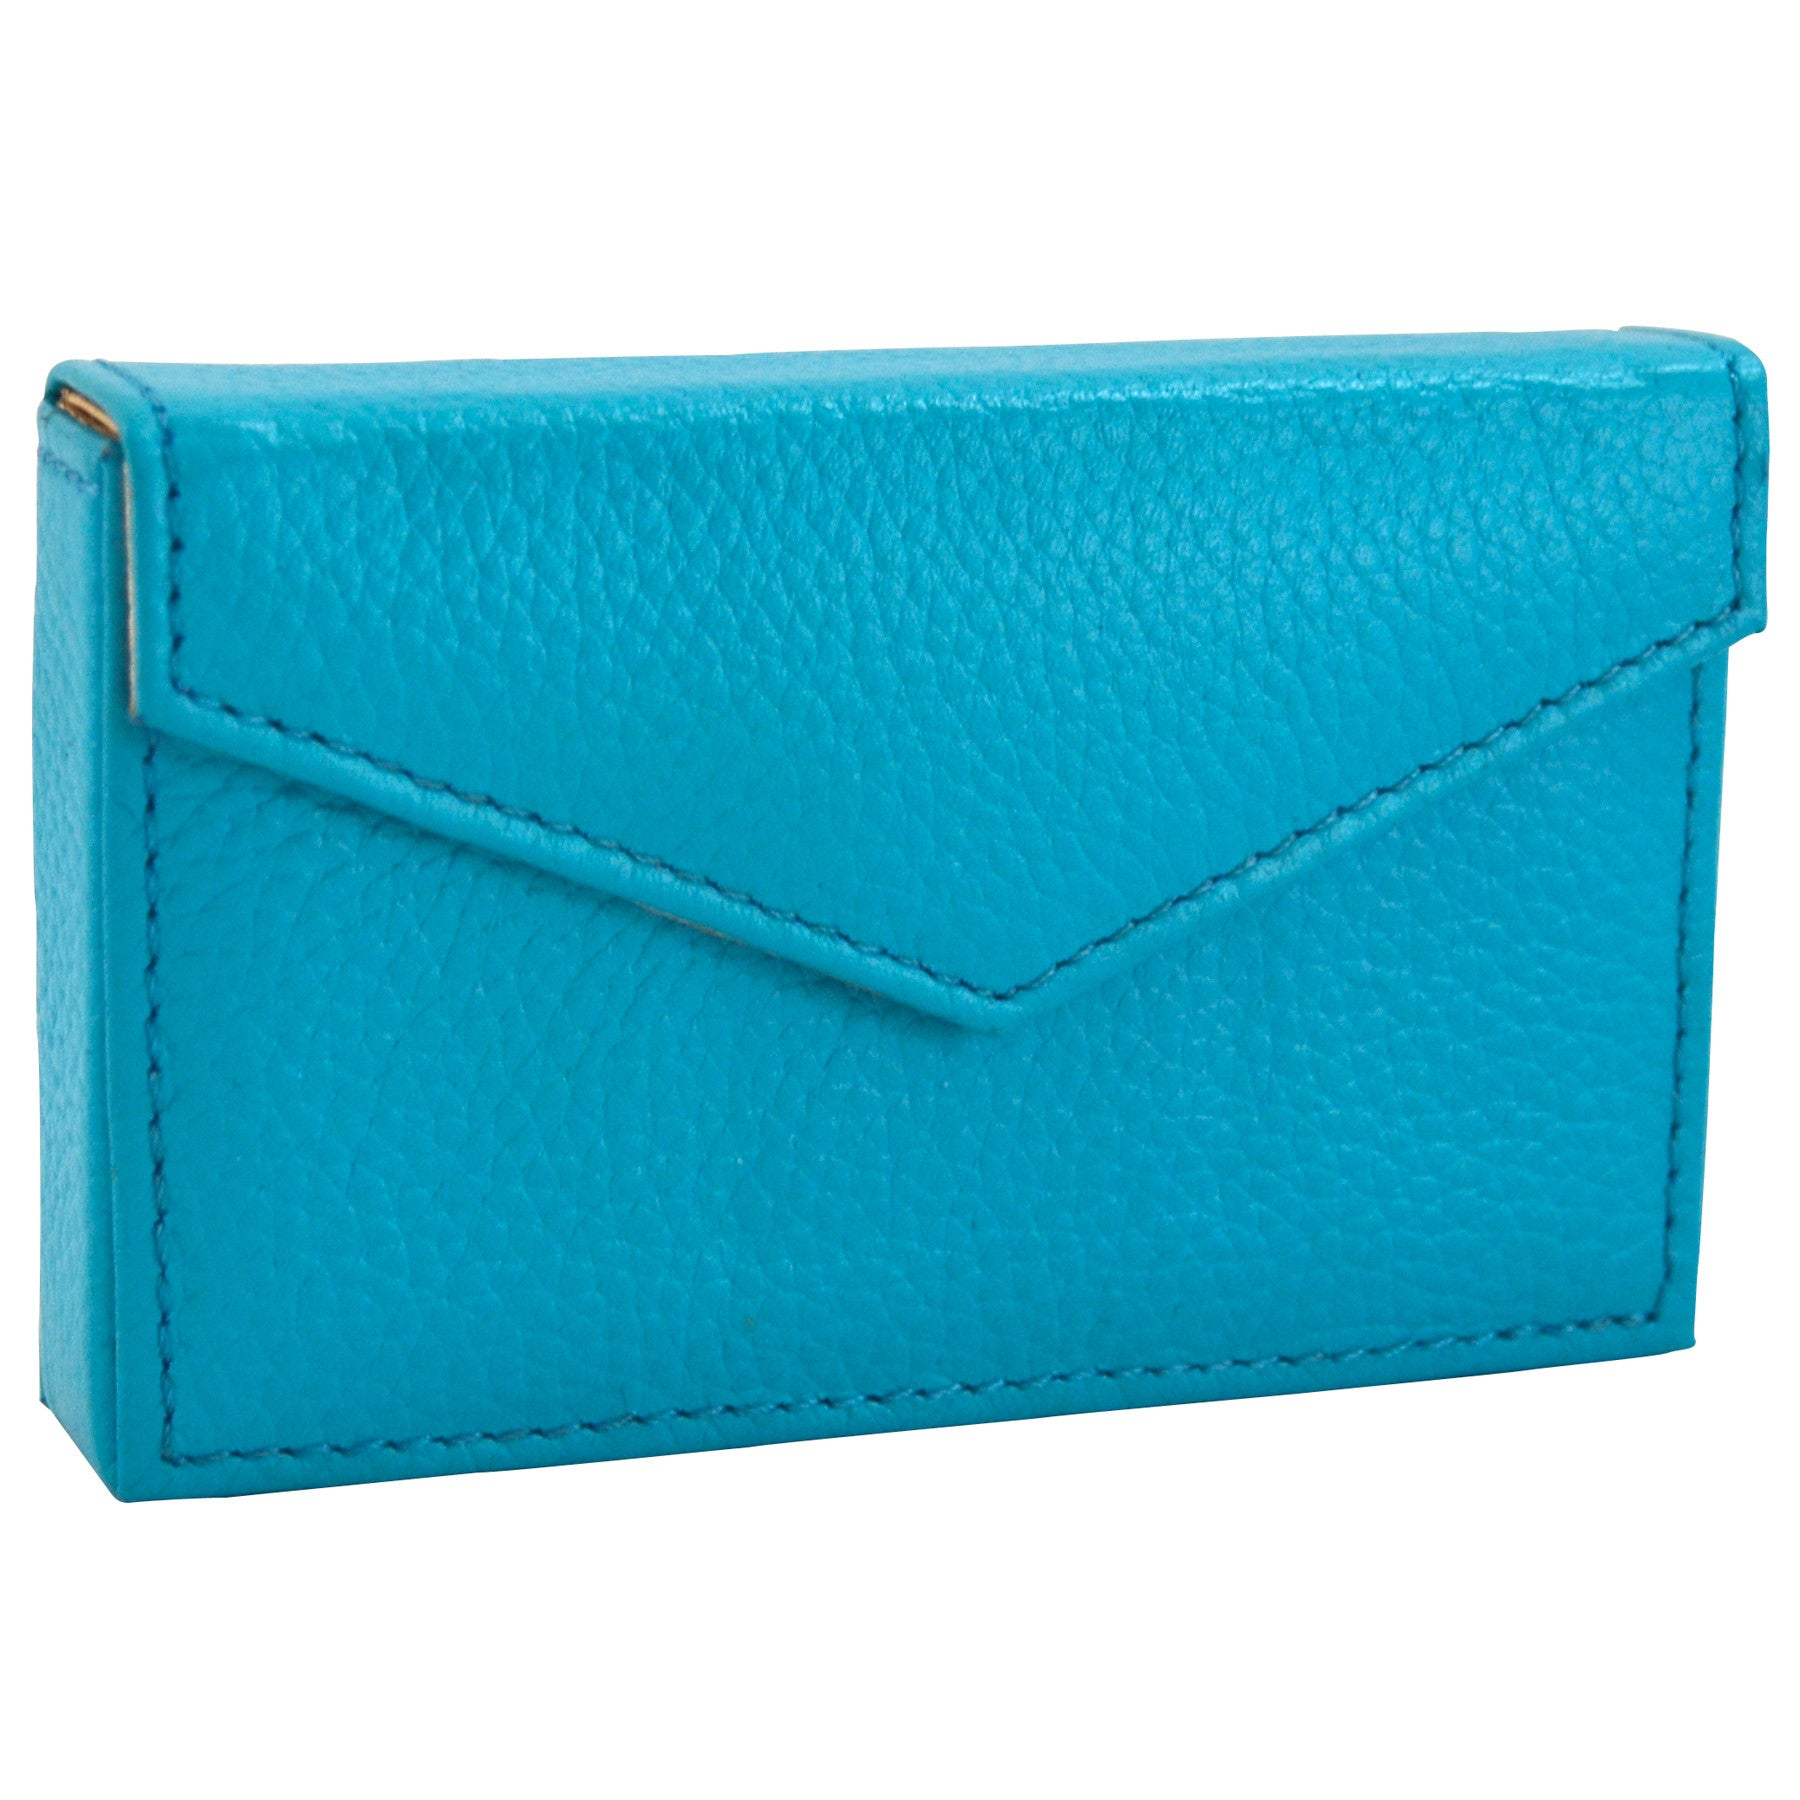 Alicia Klein leather card holder, turquoise blue